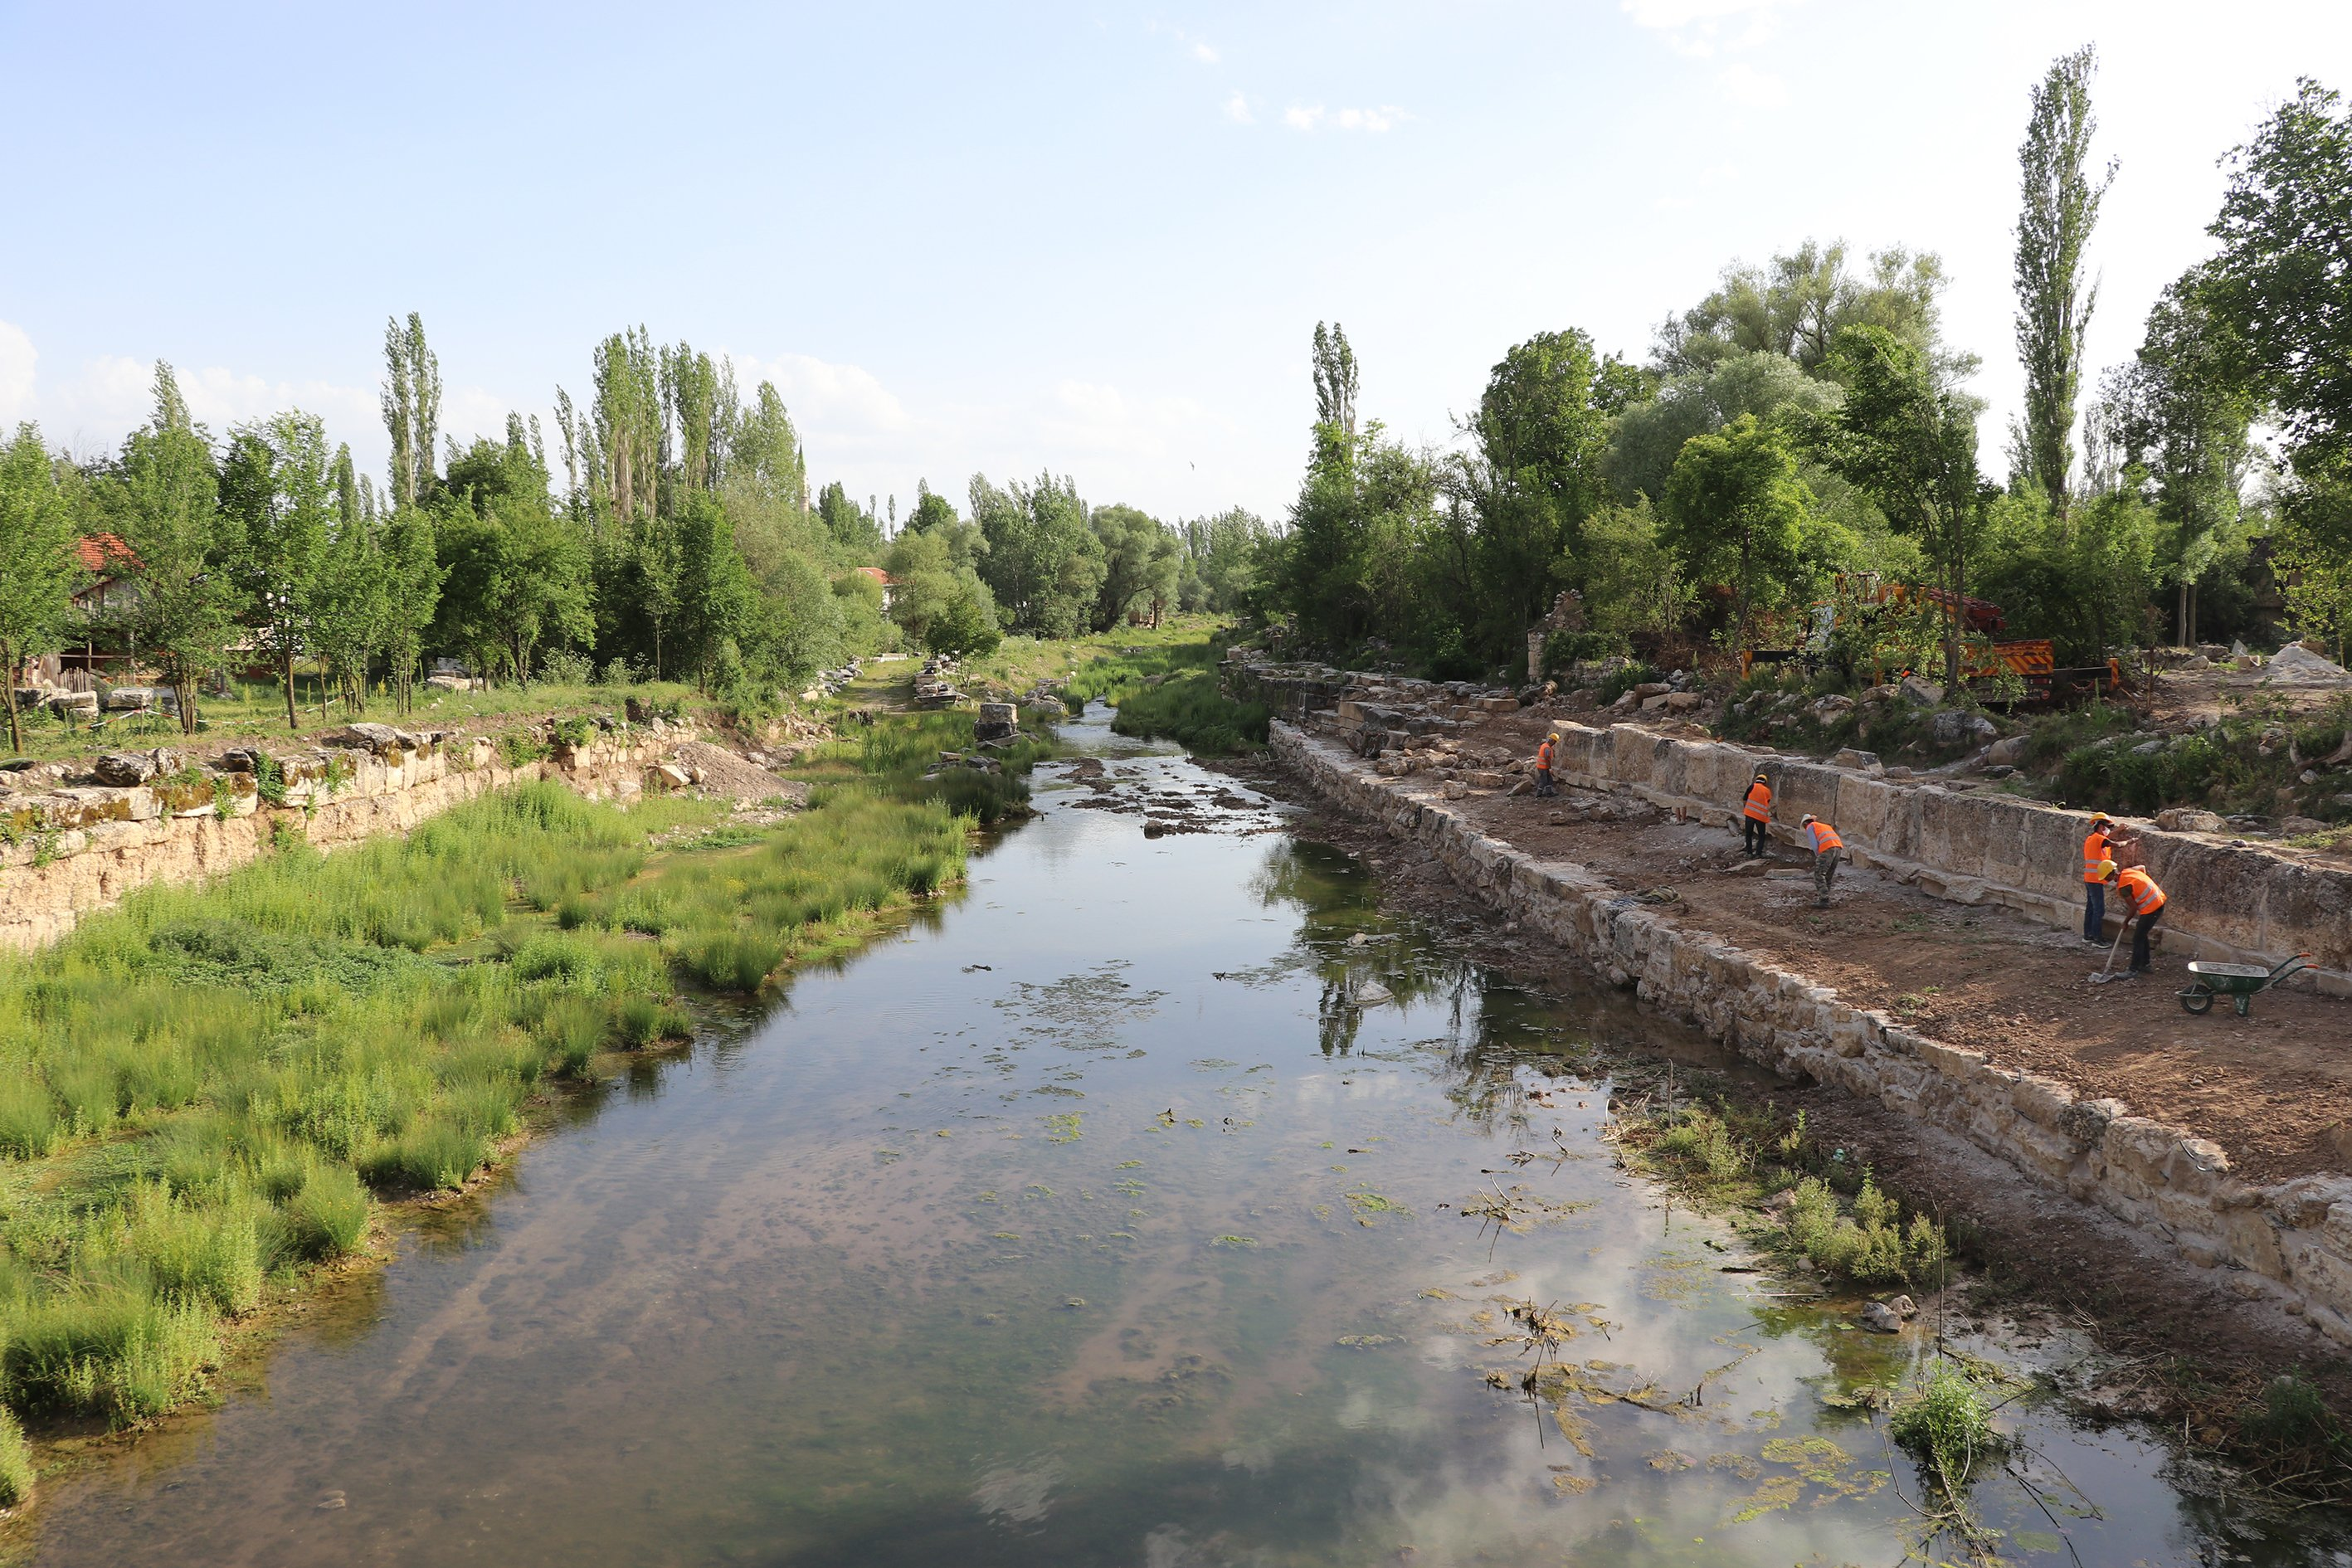 Municipal and archaeological teams are working to get the waterways ready for boat tours. (AA Photo)